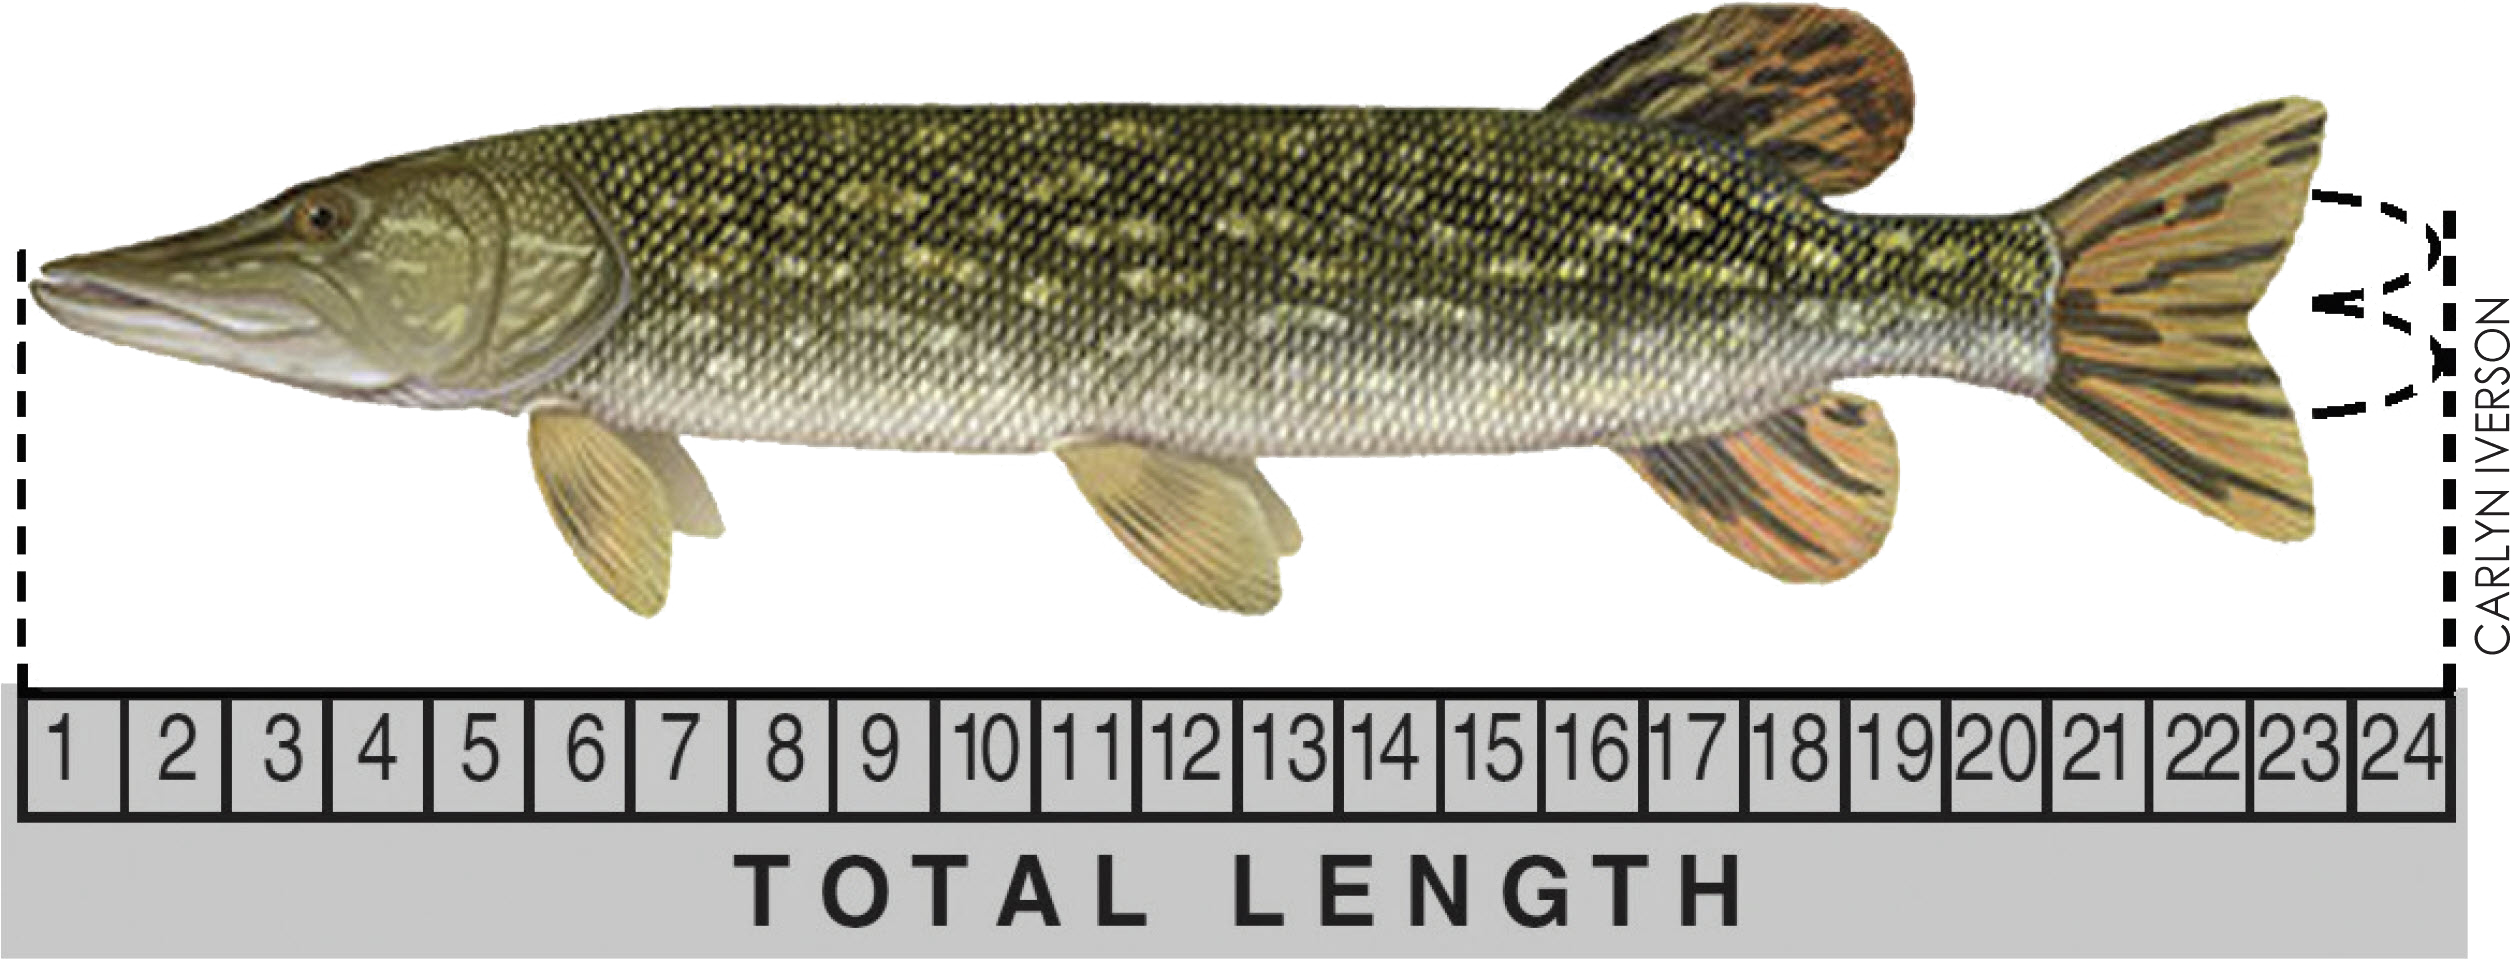 Northern pike above ruler